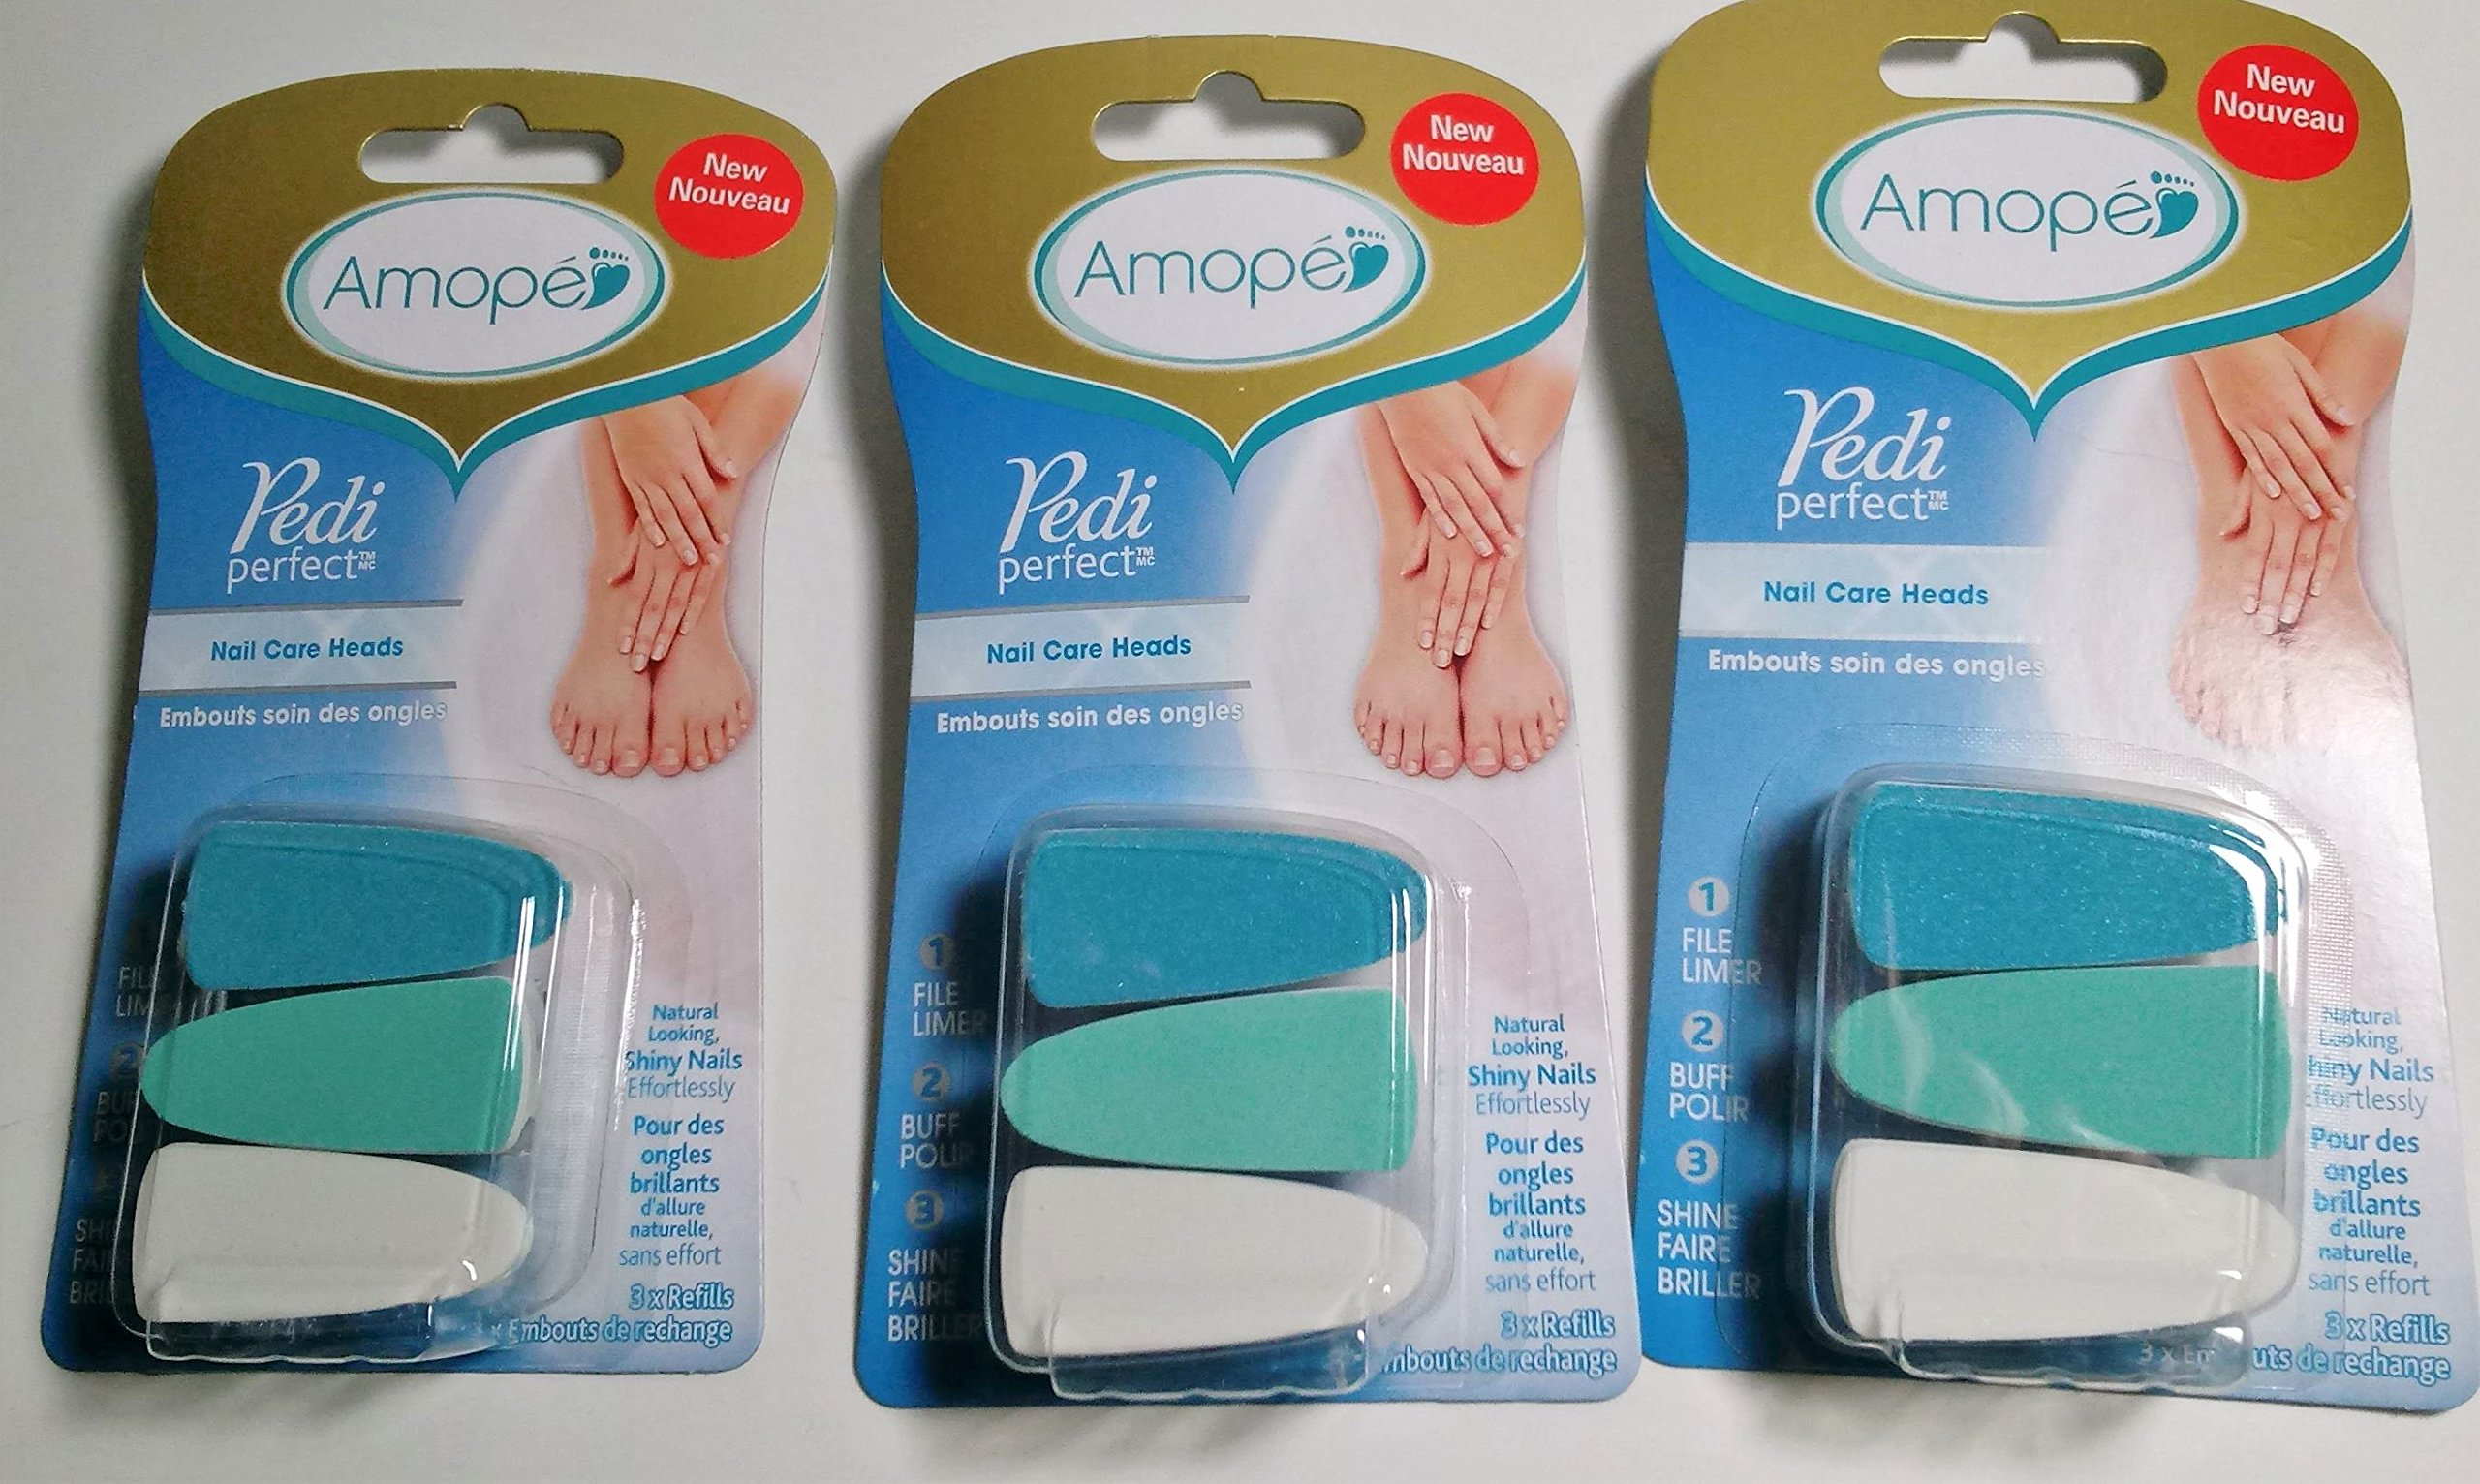 Amopé Pedi Perfect Electronic Nail File Refills, 3 Count, (Pack Of 3)